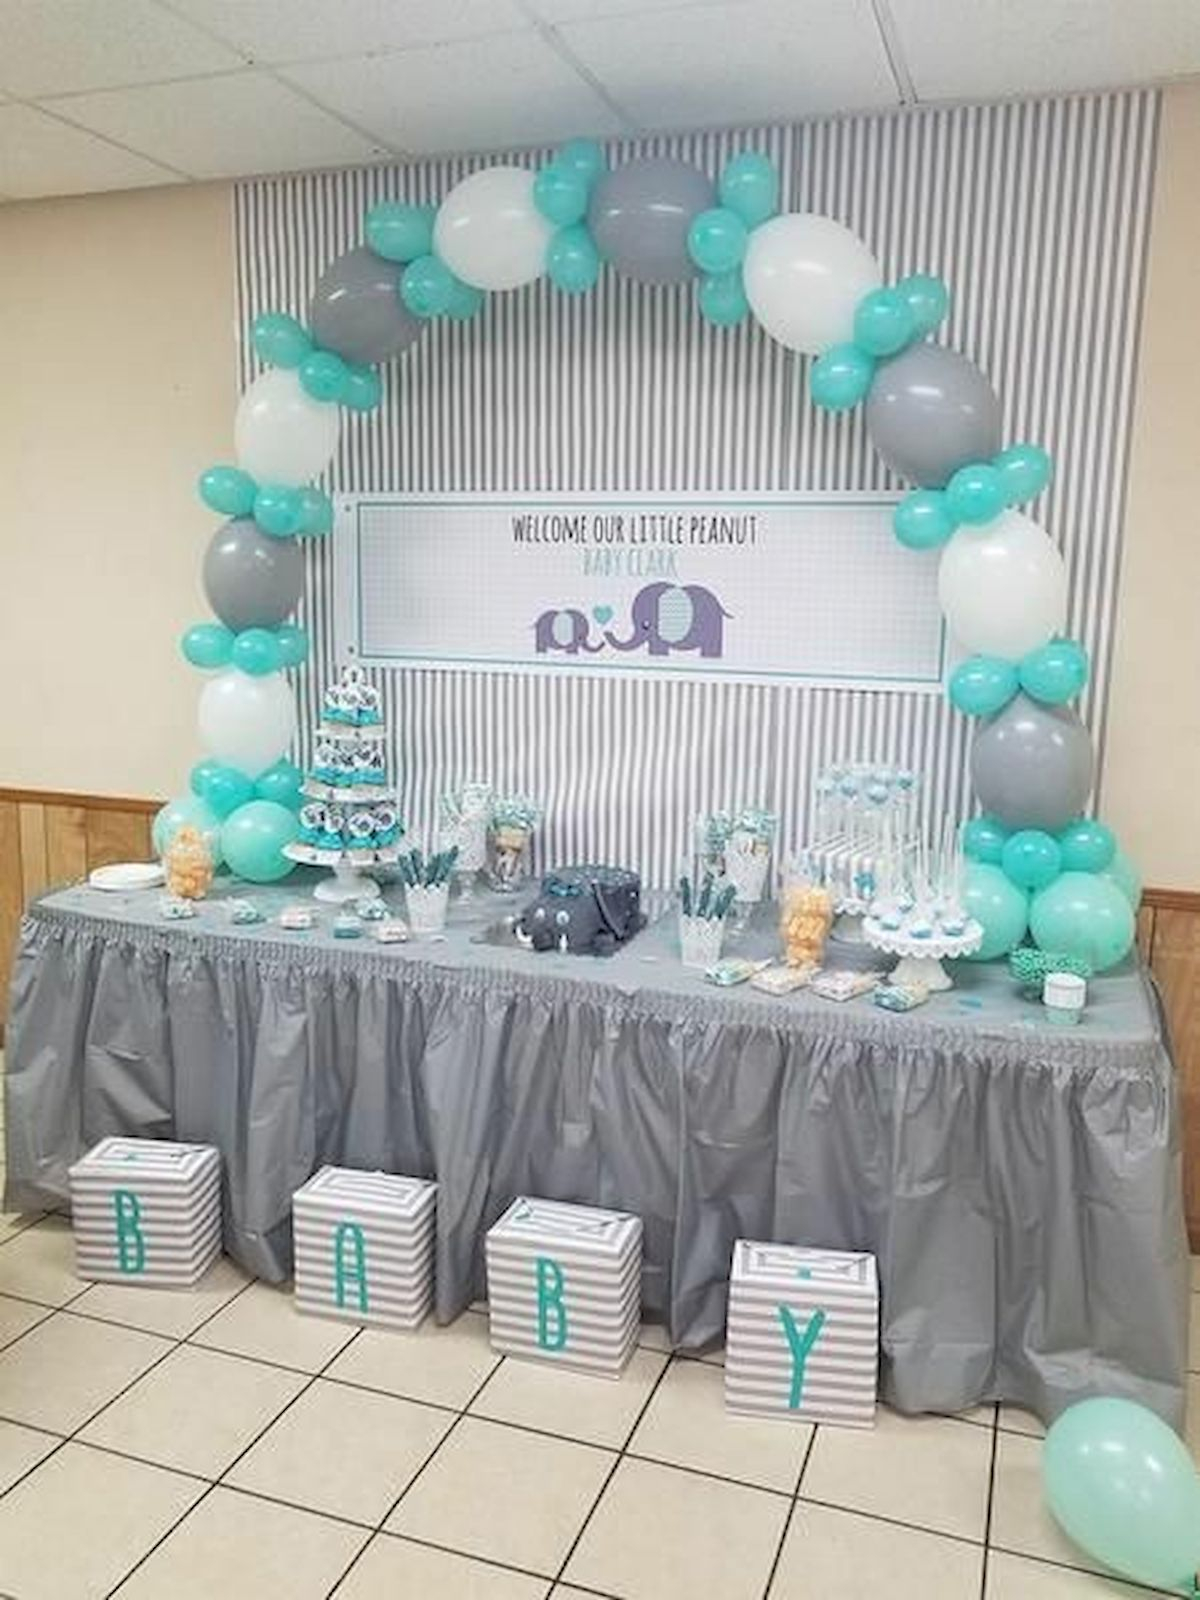 50 Awesome Baby Shower Themes And Decorating Ideas For Boy Turquoise Baby Showers Baby Shower Balloons Baby Shower Centerpieces